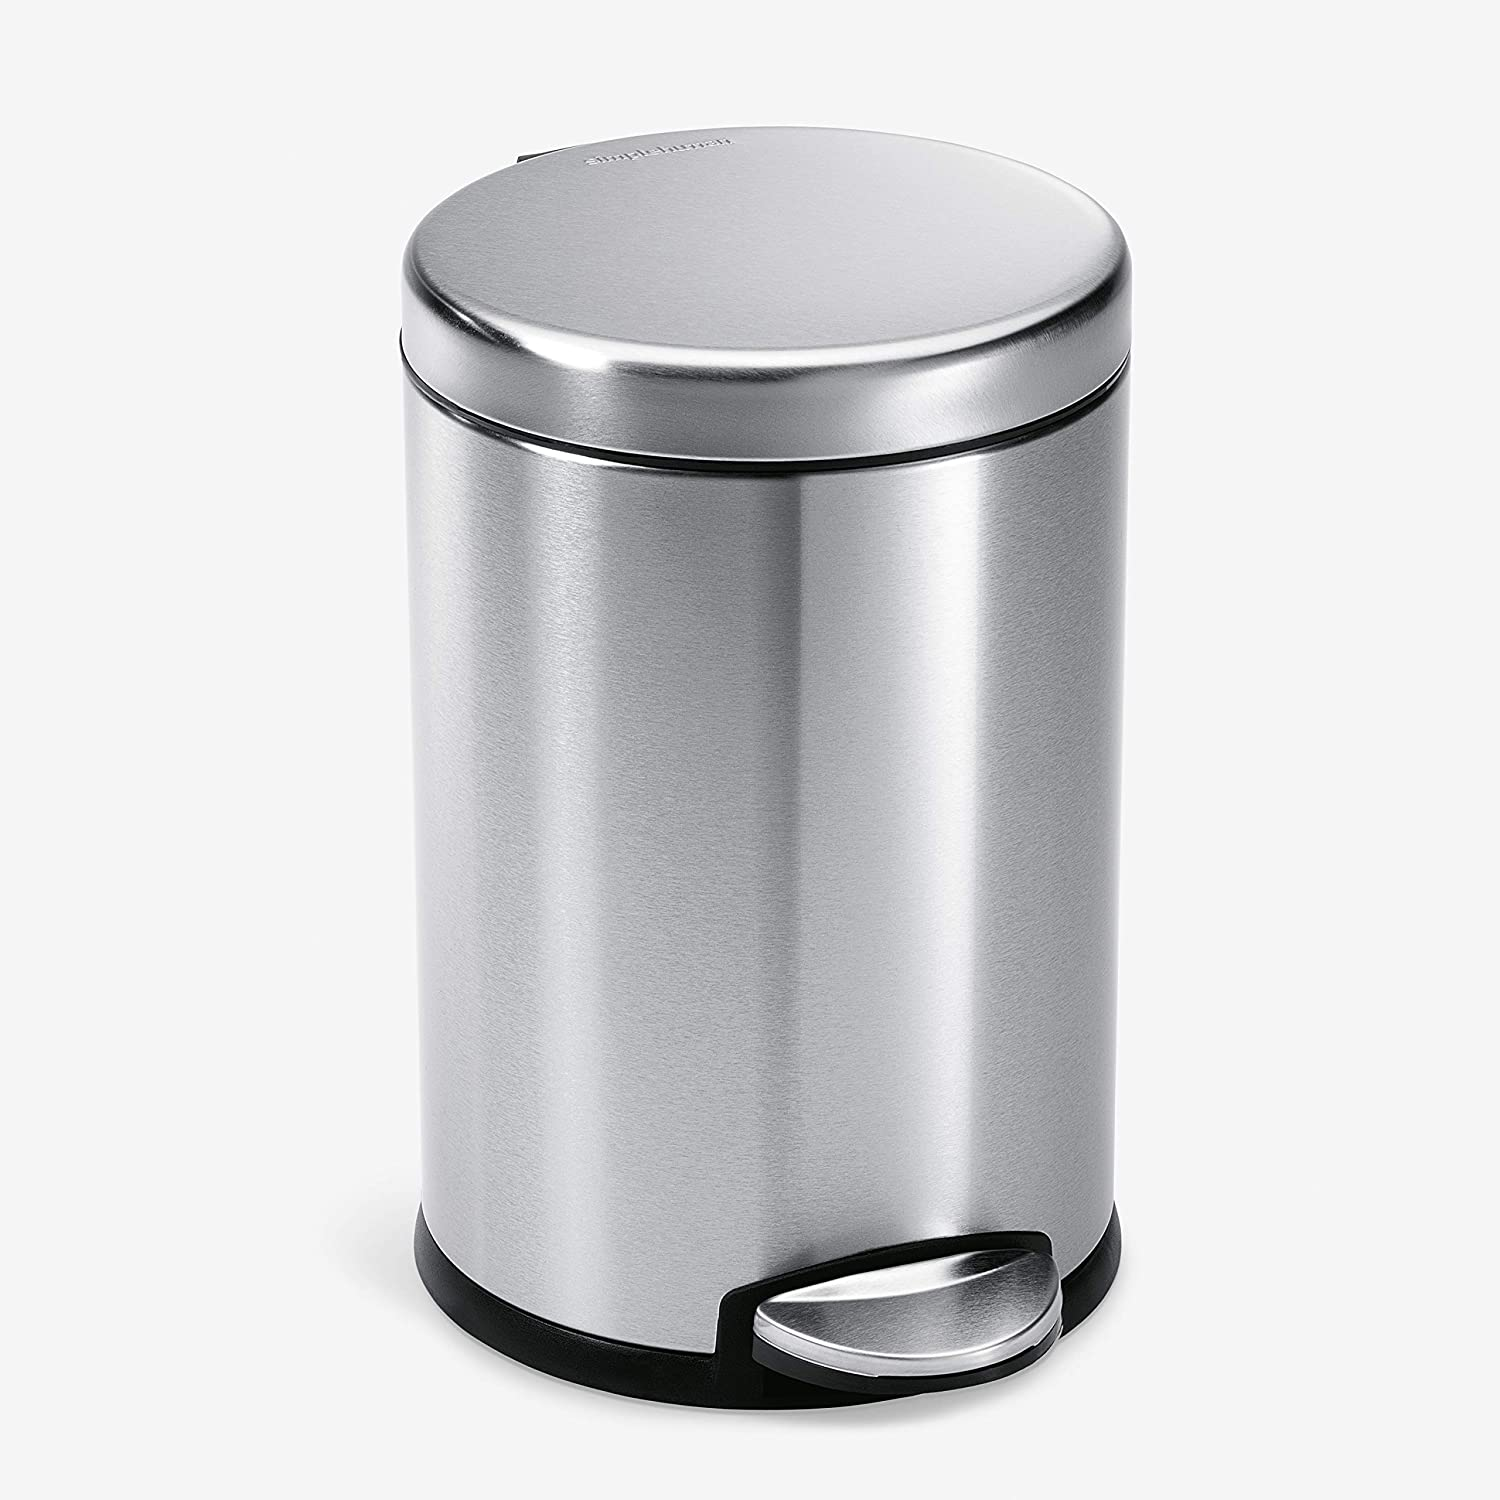 Amazon.com: simplehuman Gallon Round Bathroom Step Trash Can, 4.5 Liter /  1.2 Gallon, Brushed Stainless Steel: Home & Kitchen